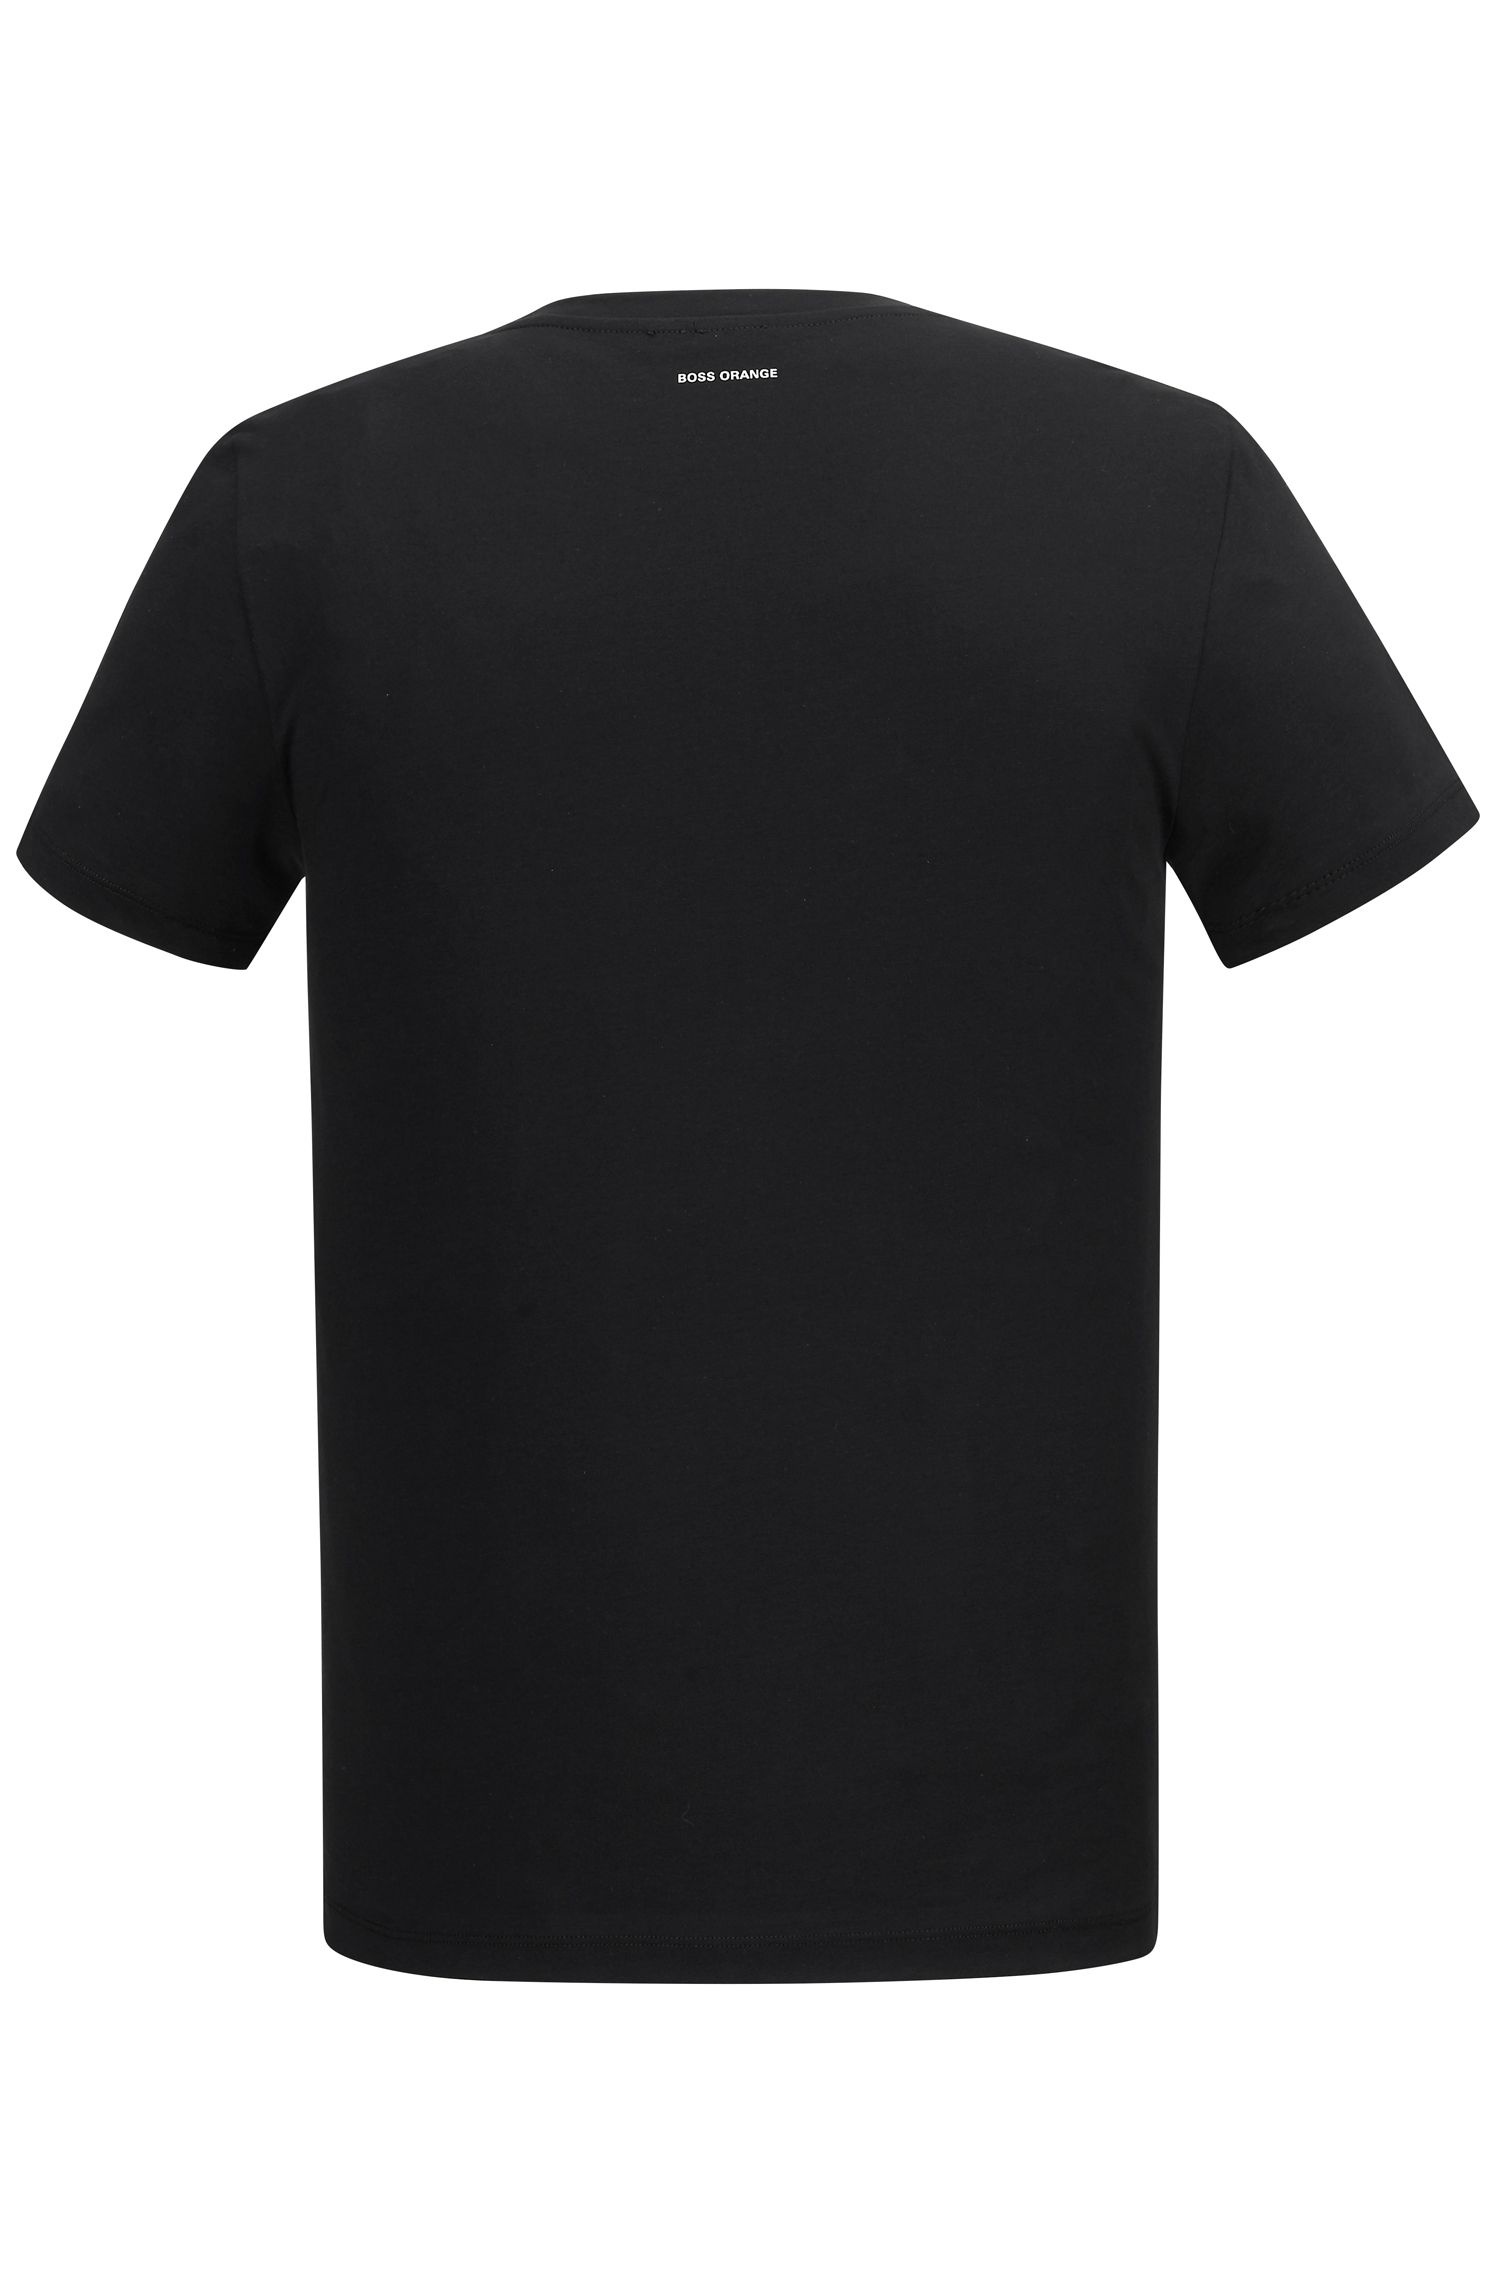 Cotton Graphic T-Shirt | Typical